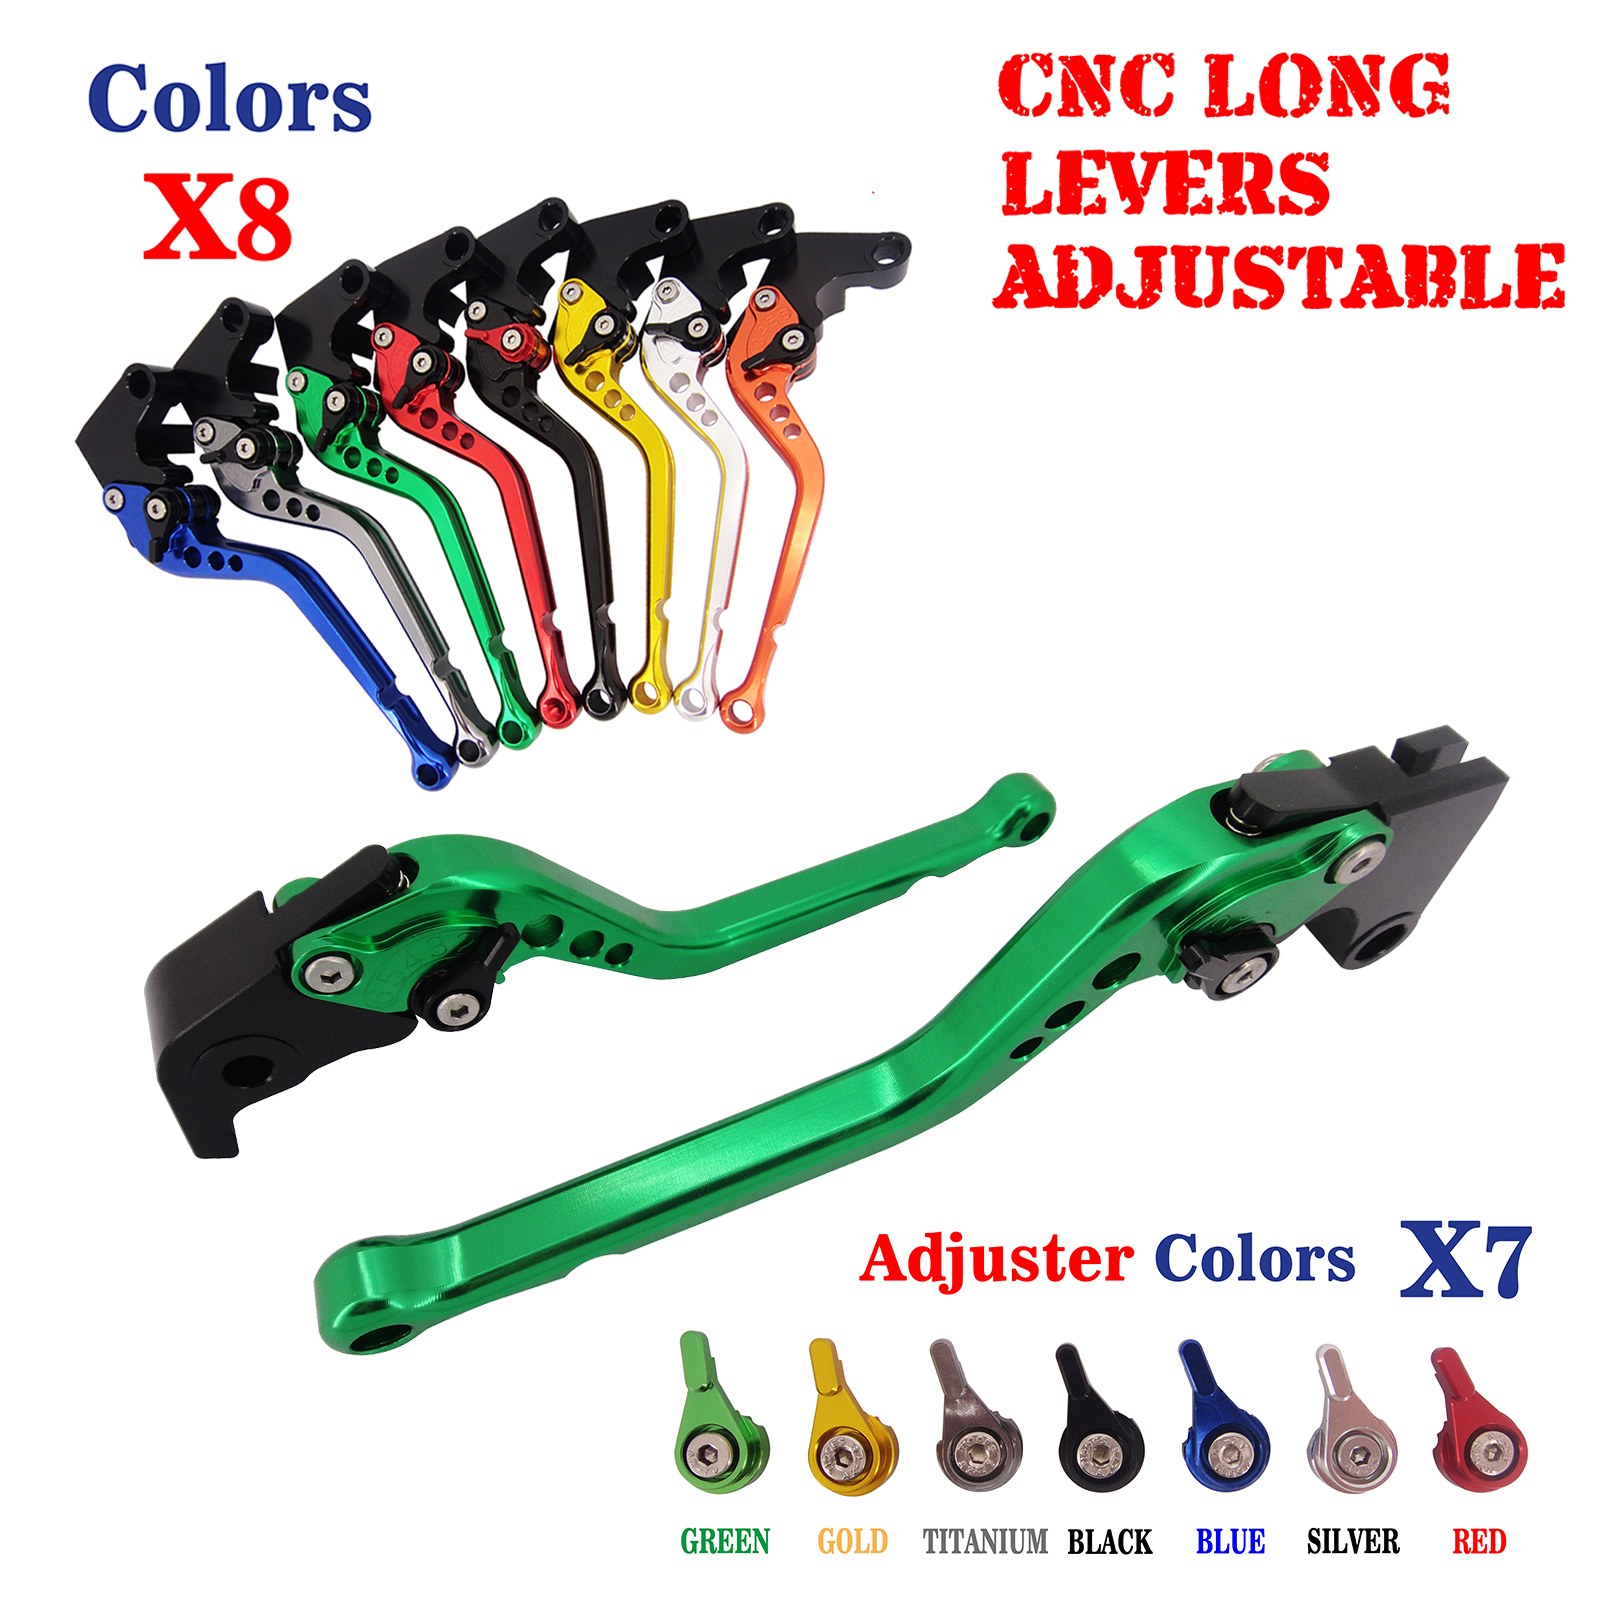 CNC Long Longy Adjustable Brake Clutch Levers For Kawasaki NINJA 650R /ER-6F/ER-6N 2009-2016 Versys 650 09-14 Ninja 400R 2011 стоимость